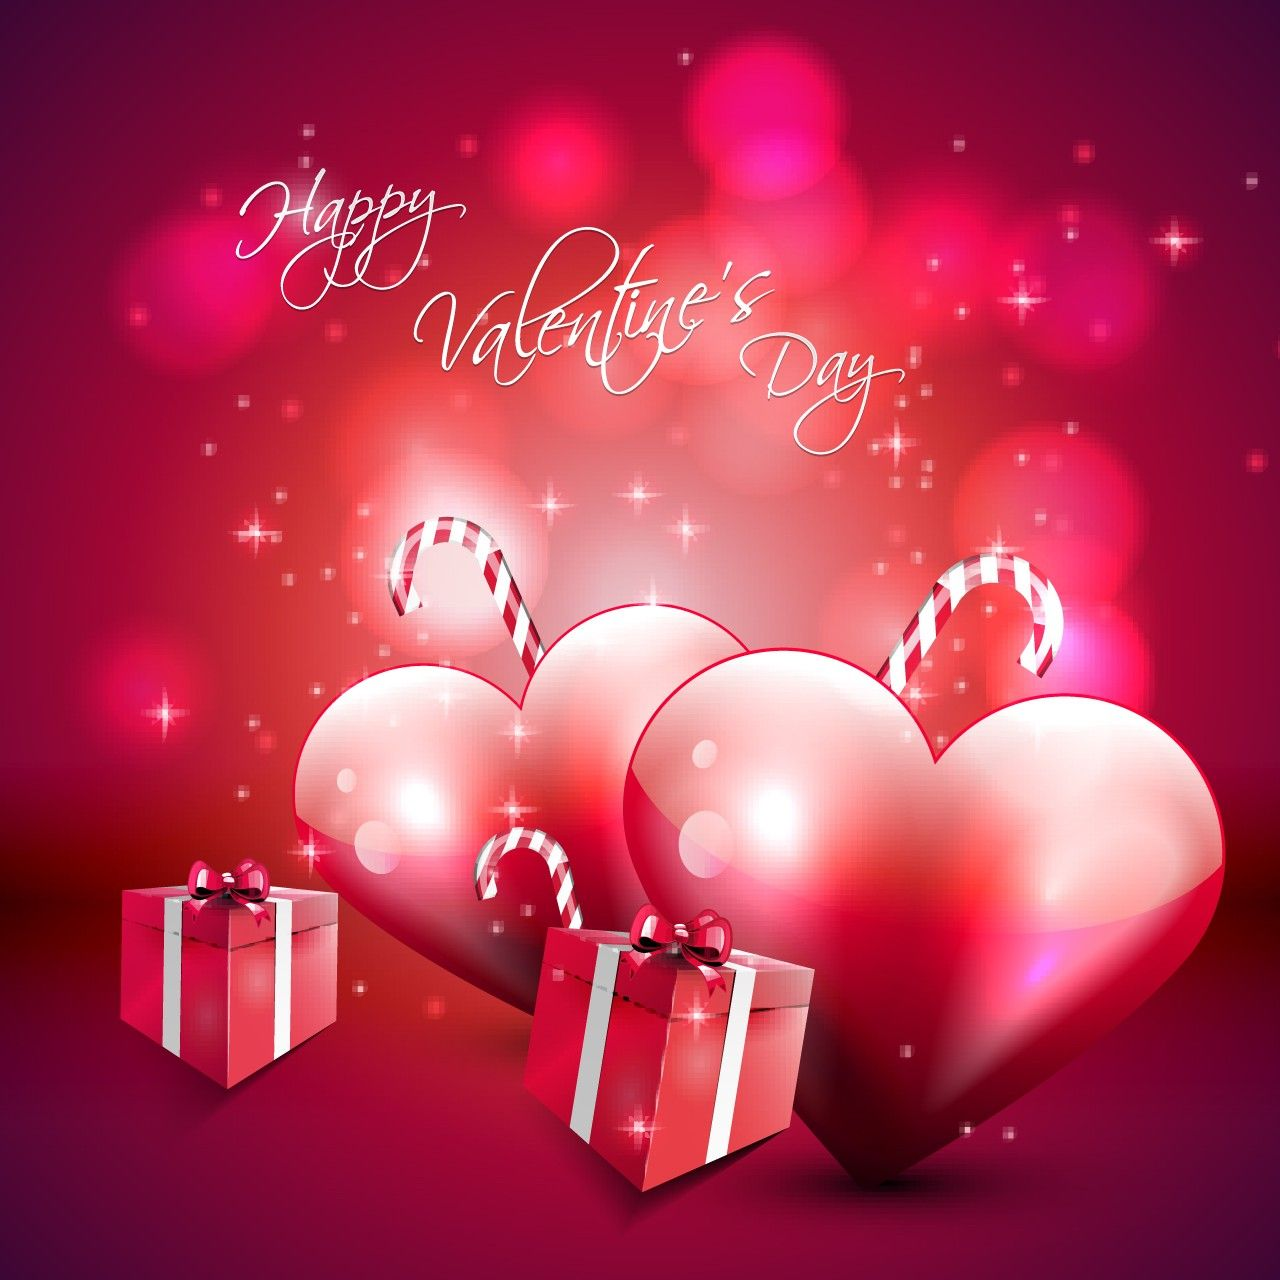 1280x1280 Happy Valentines Day Gifts Wallpaper